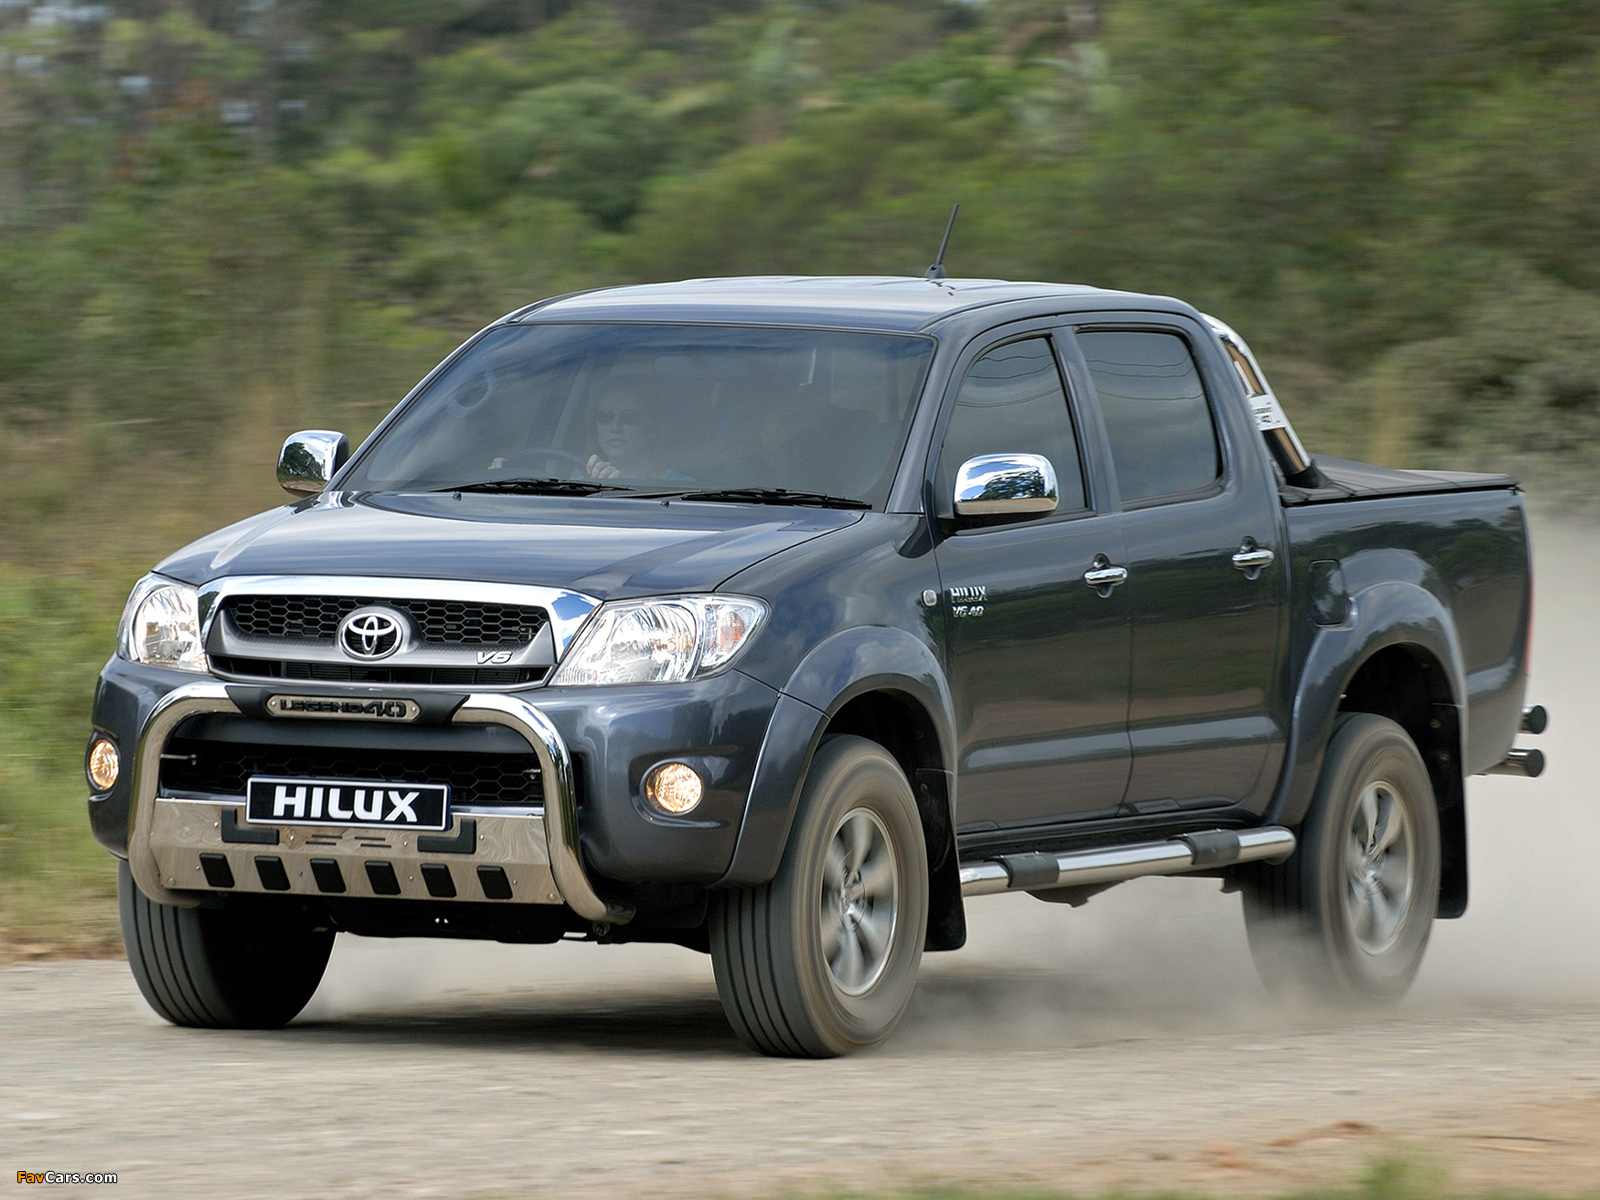 2010 toyota hilux partsopen. Black Bedroom Furniture Sets. Home Design Ideas